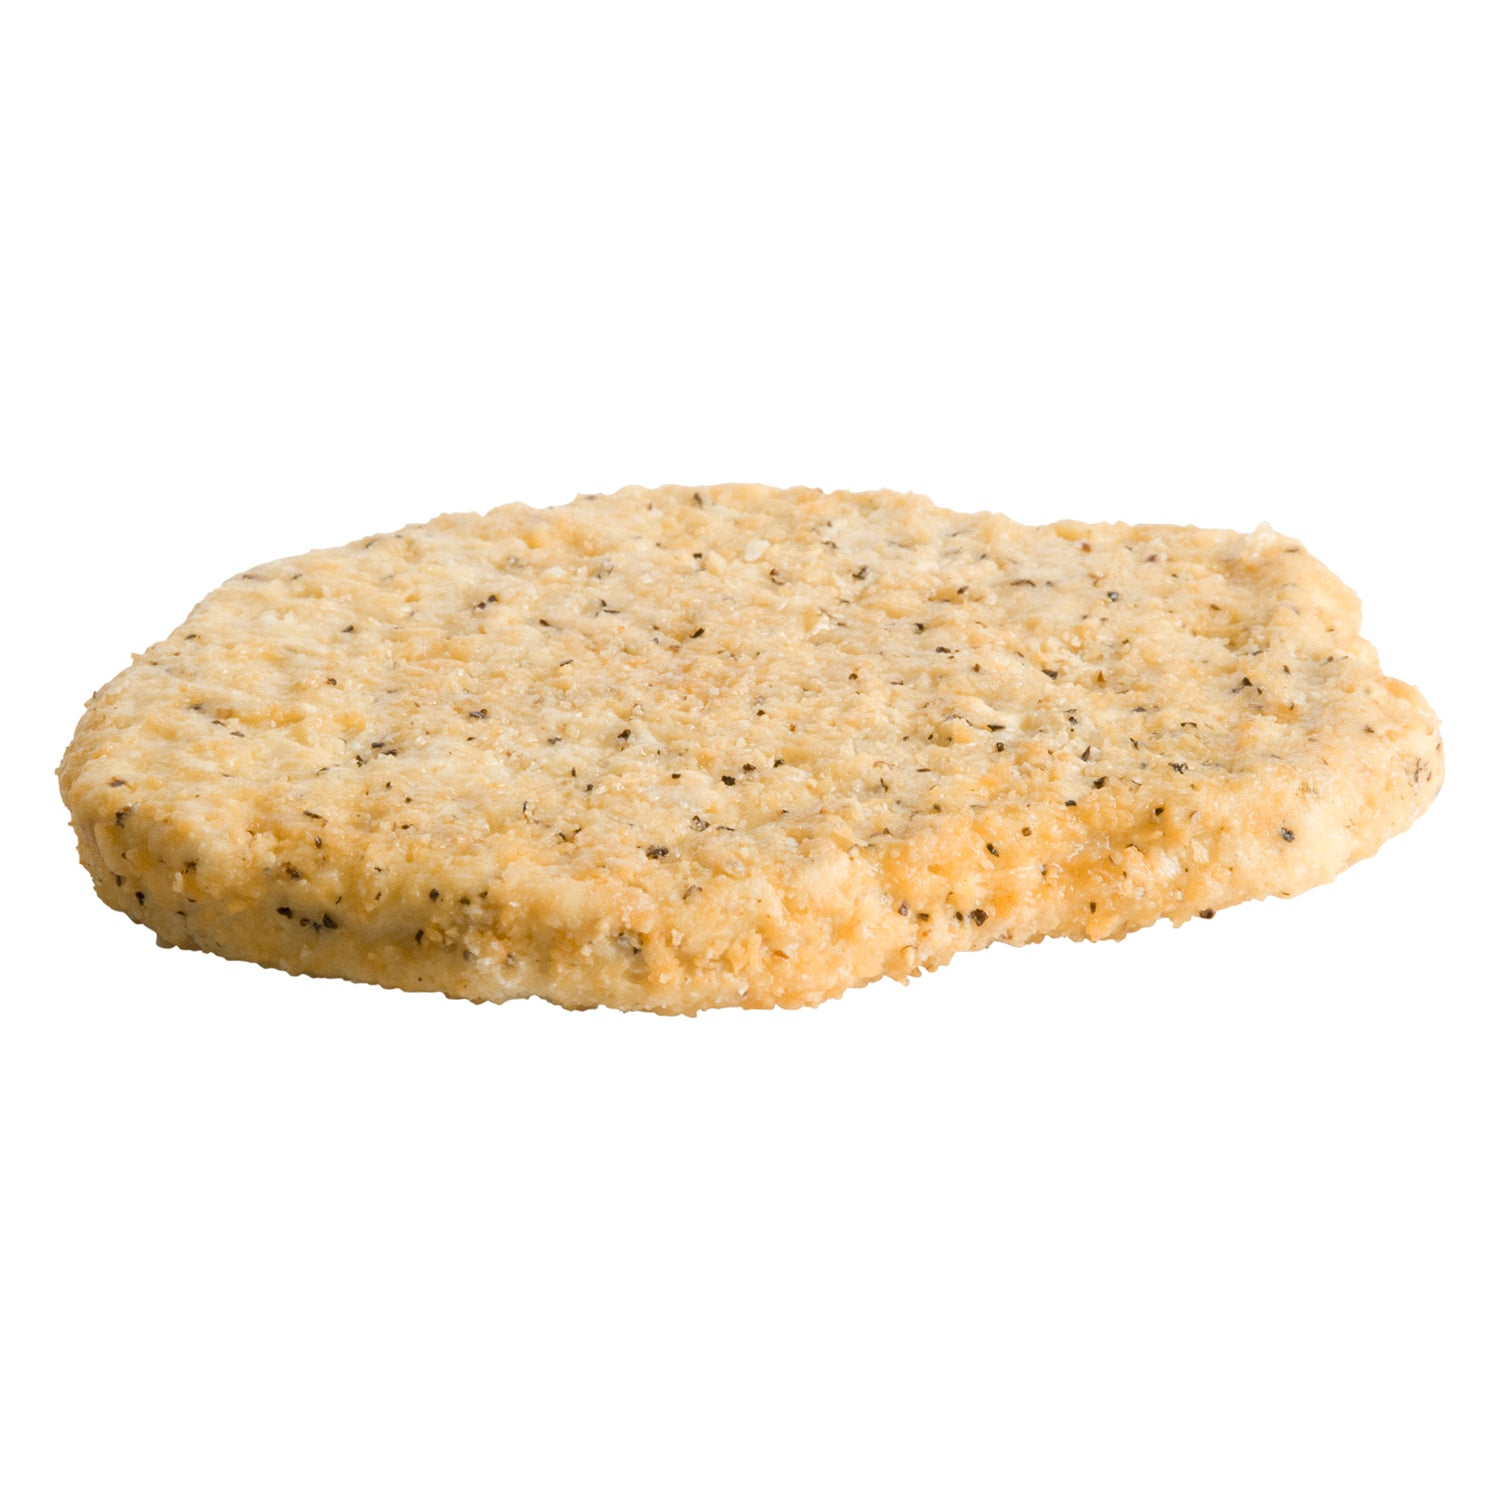 Flamingo Frozen Breaded Turkey Schnitzel 4 kg - 1 Pack [$13.50/kg]